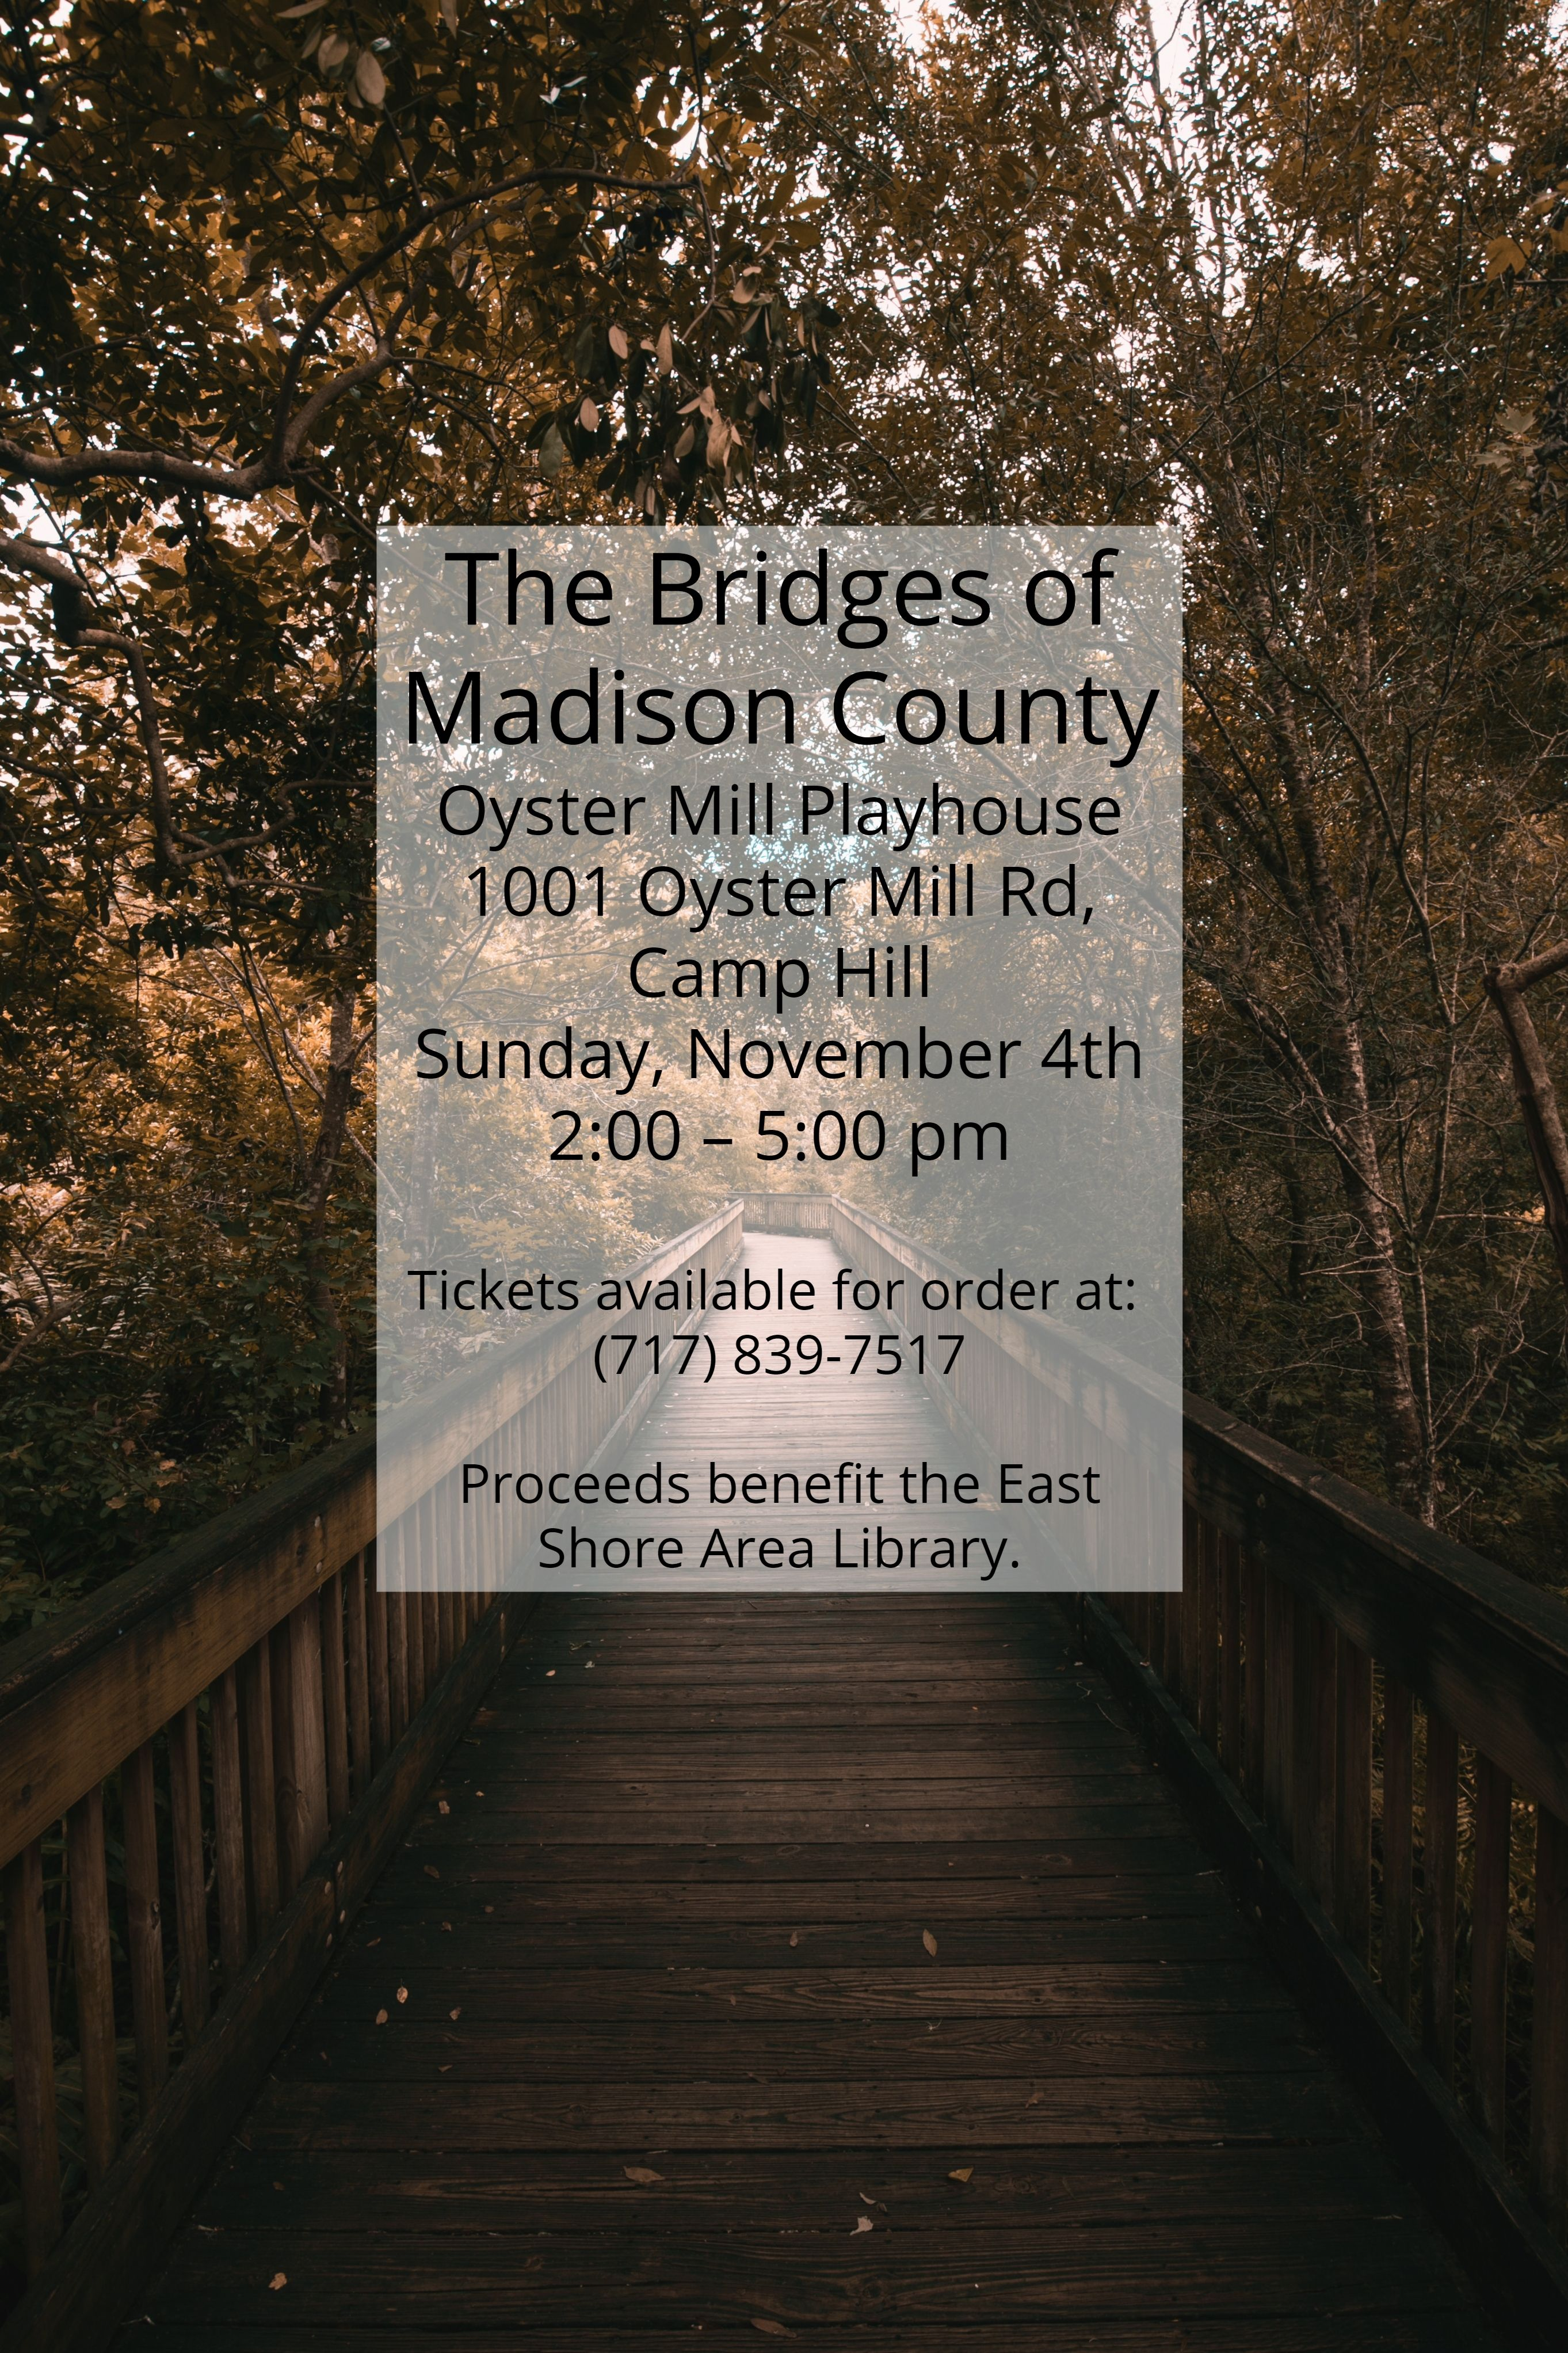 Would You Like To Support The East Shore Area Library And Have A Fun Theater Experience Get Your Tickets For The B Event Program Event Calendar Madison County